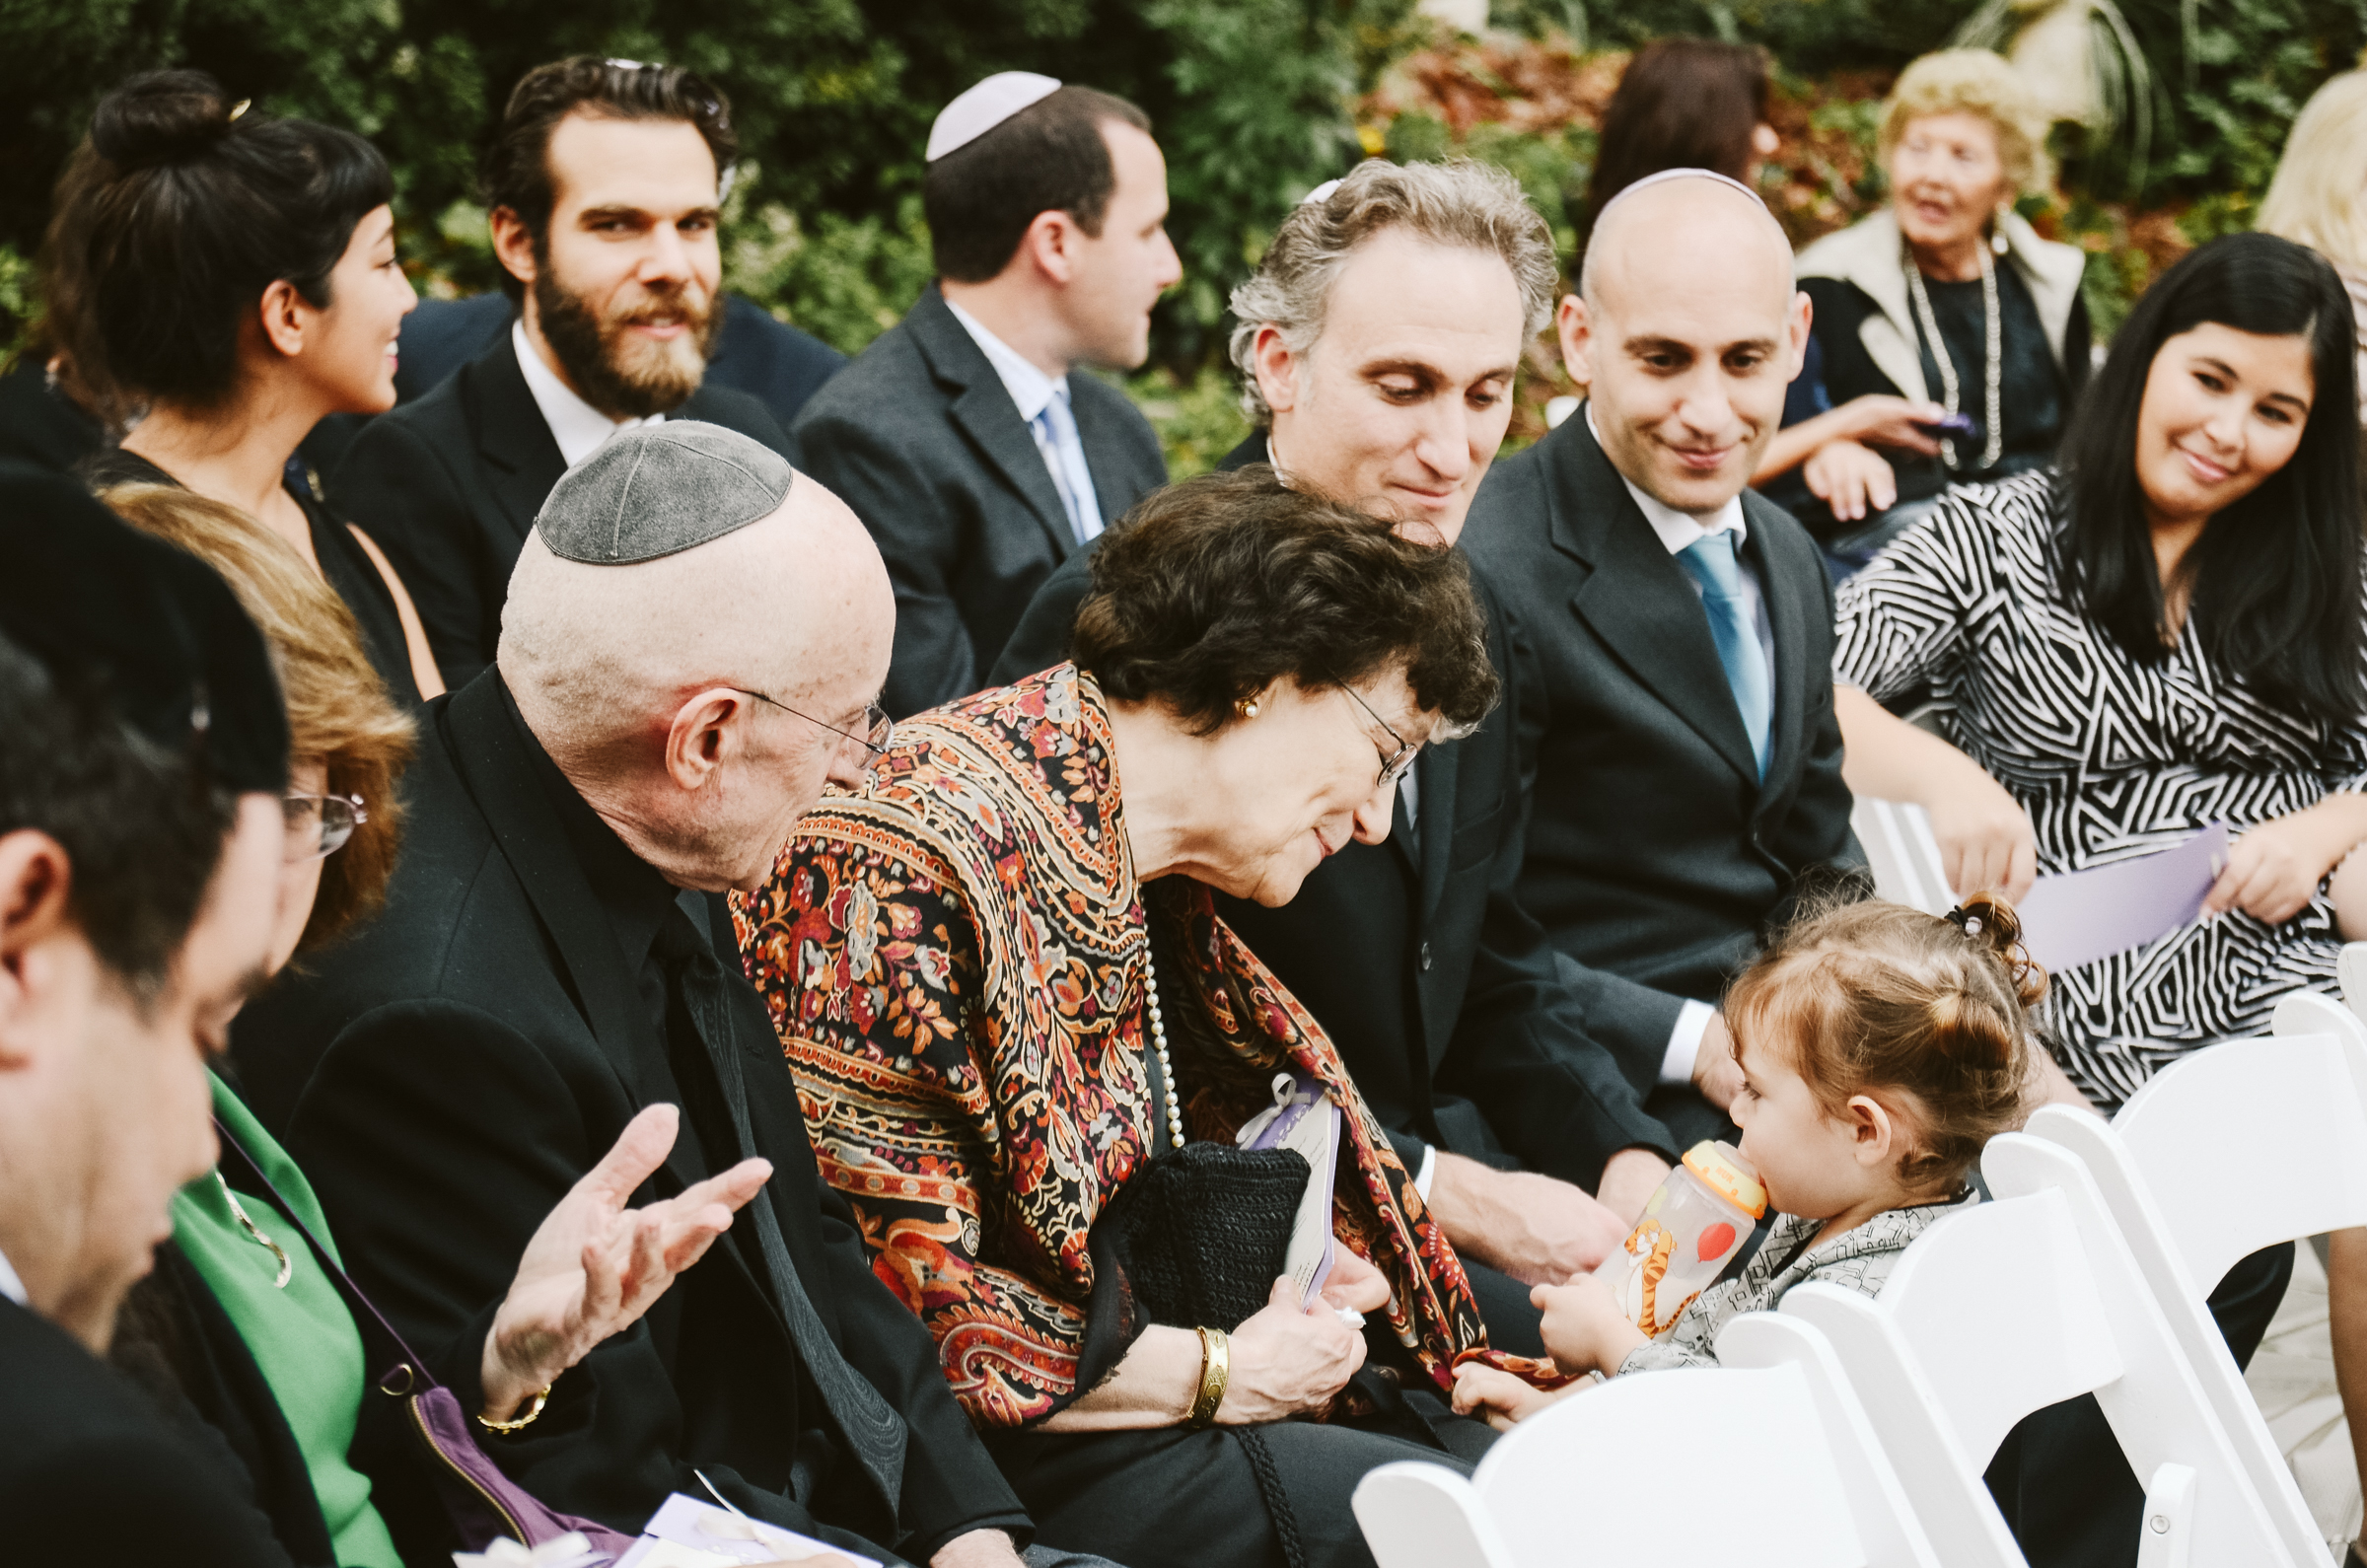 Jen and Drew's Wedding Edited 2019 web-47.jpg